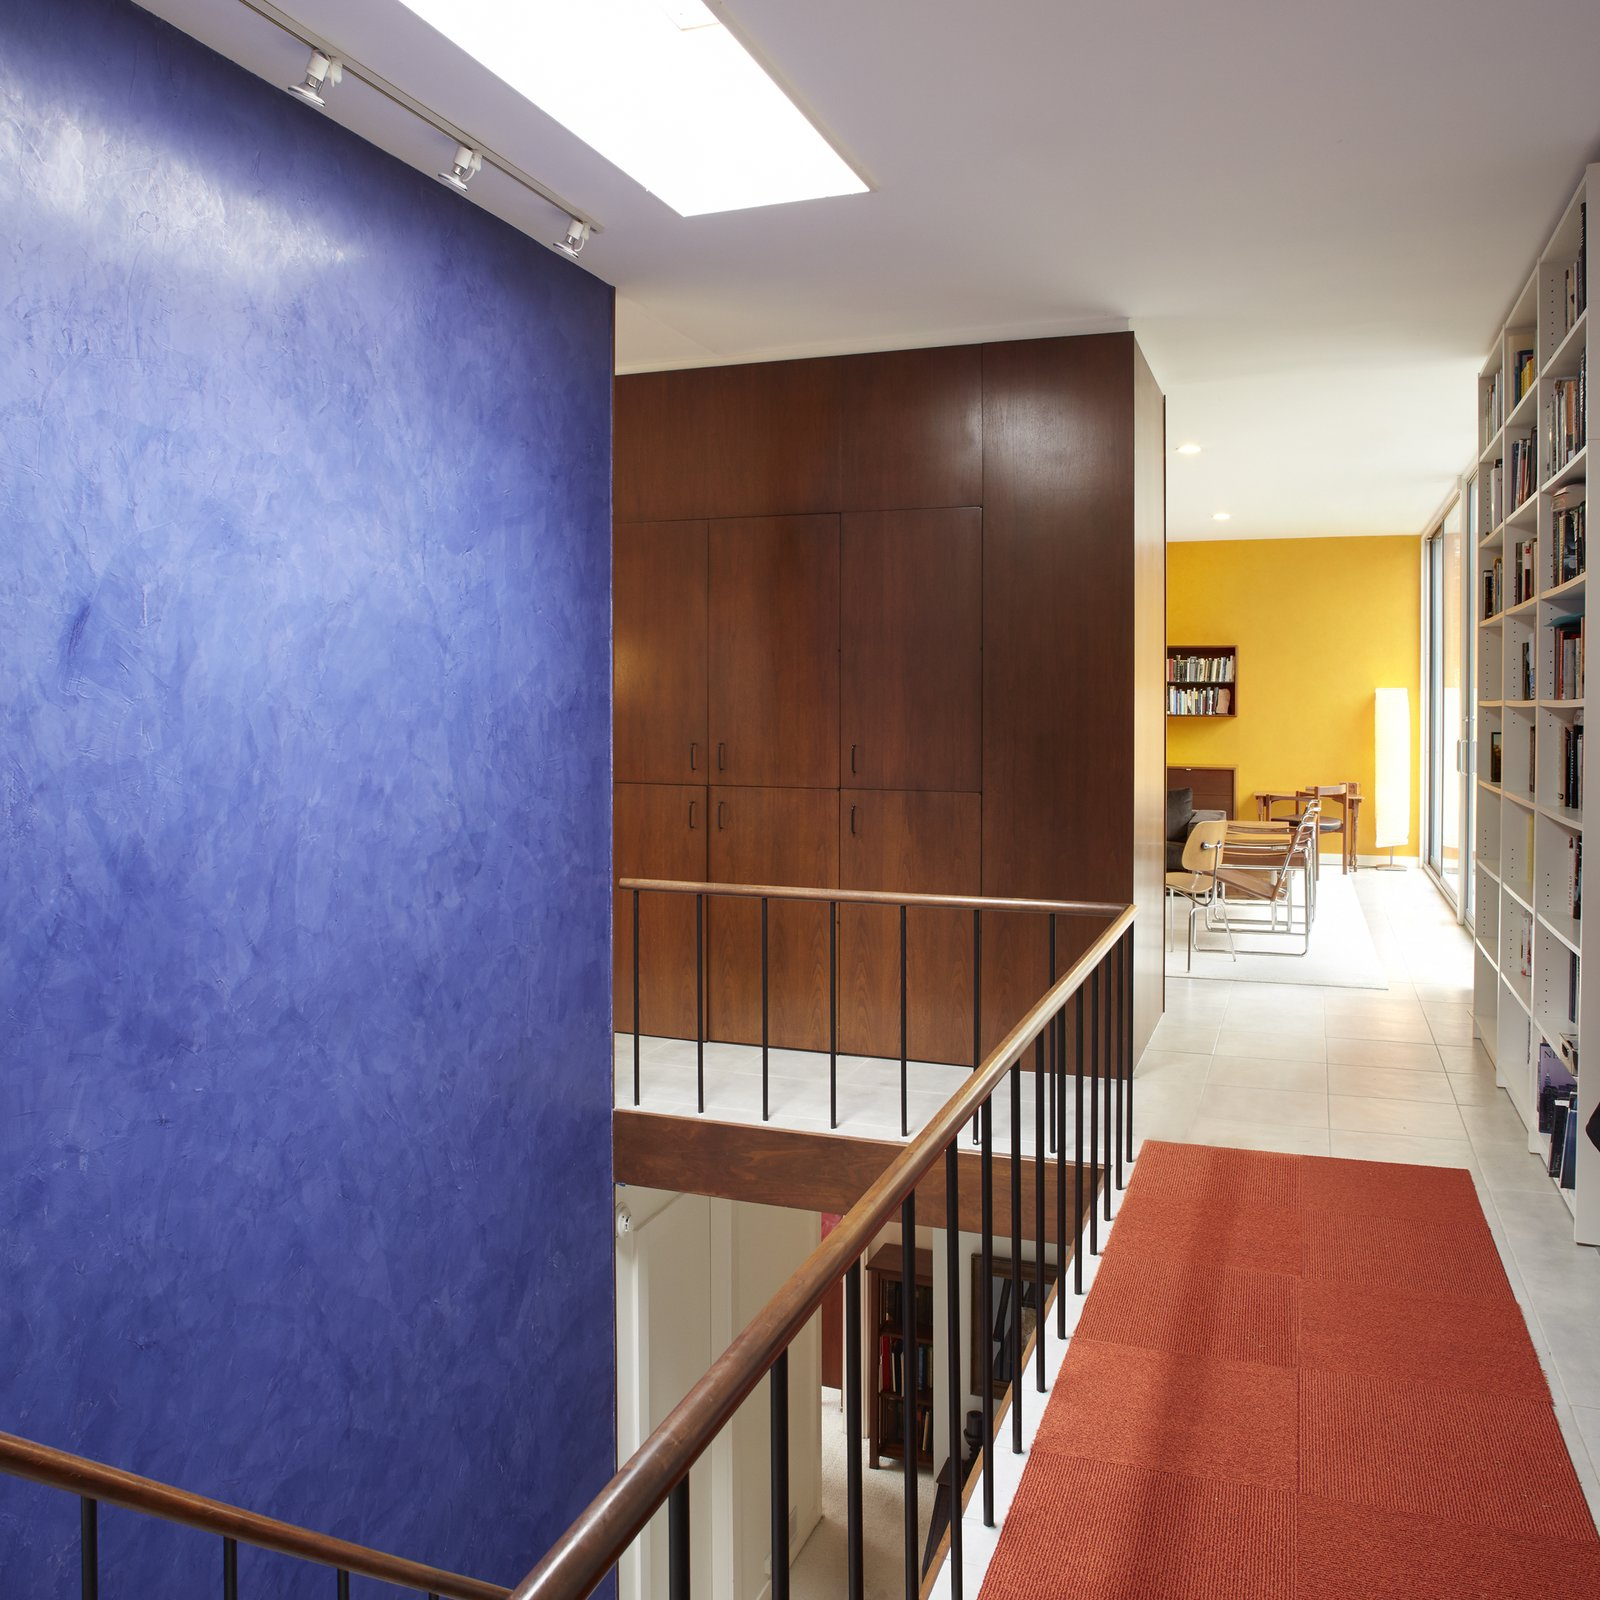 The interiors of Hugh Smallen's 1963 Becker House are accented by a rich blue that connects the two levels, while a vibrant yellow draws attention towards the living room.  Photo 11 of 15 in Get Ready For July 4th With 15 Spaces That Rock Red, White, and Blue from Beloved Midcentury Houses Examined After Decades of Wear and Tear